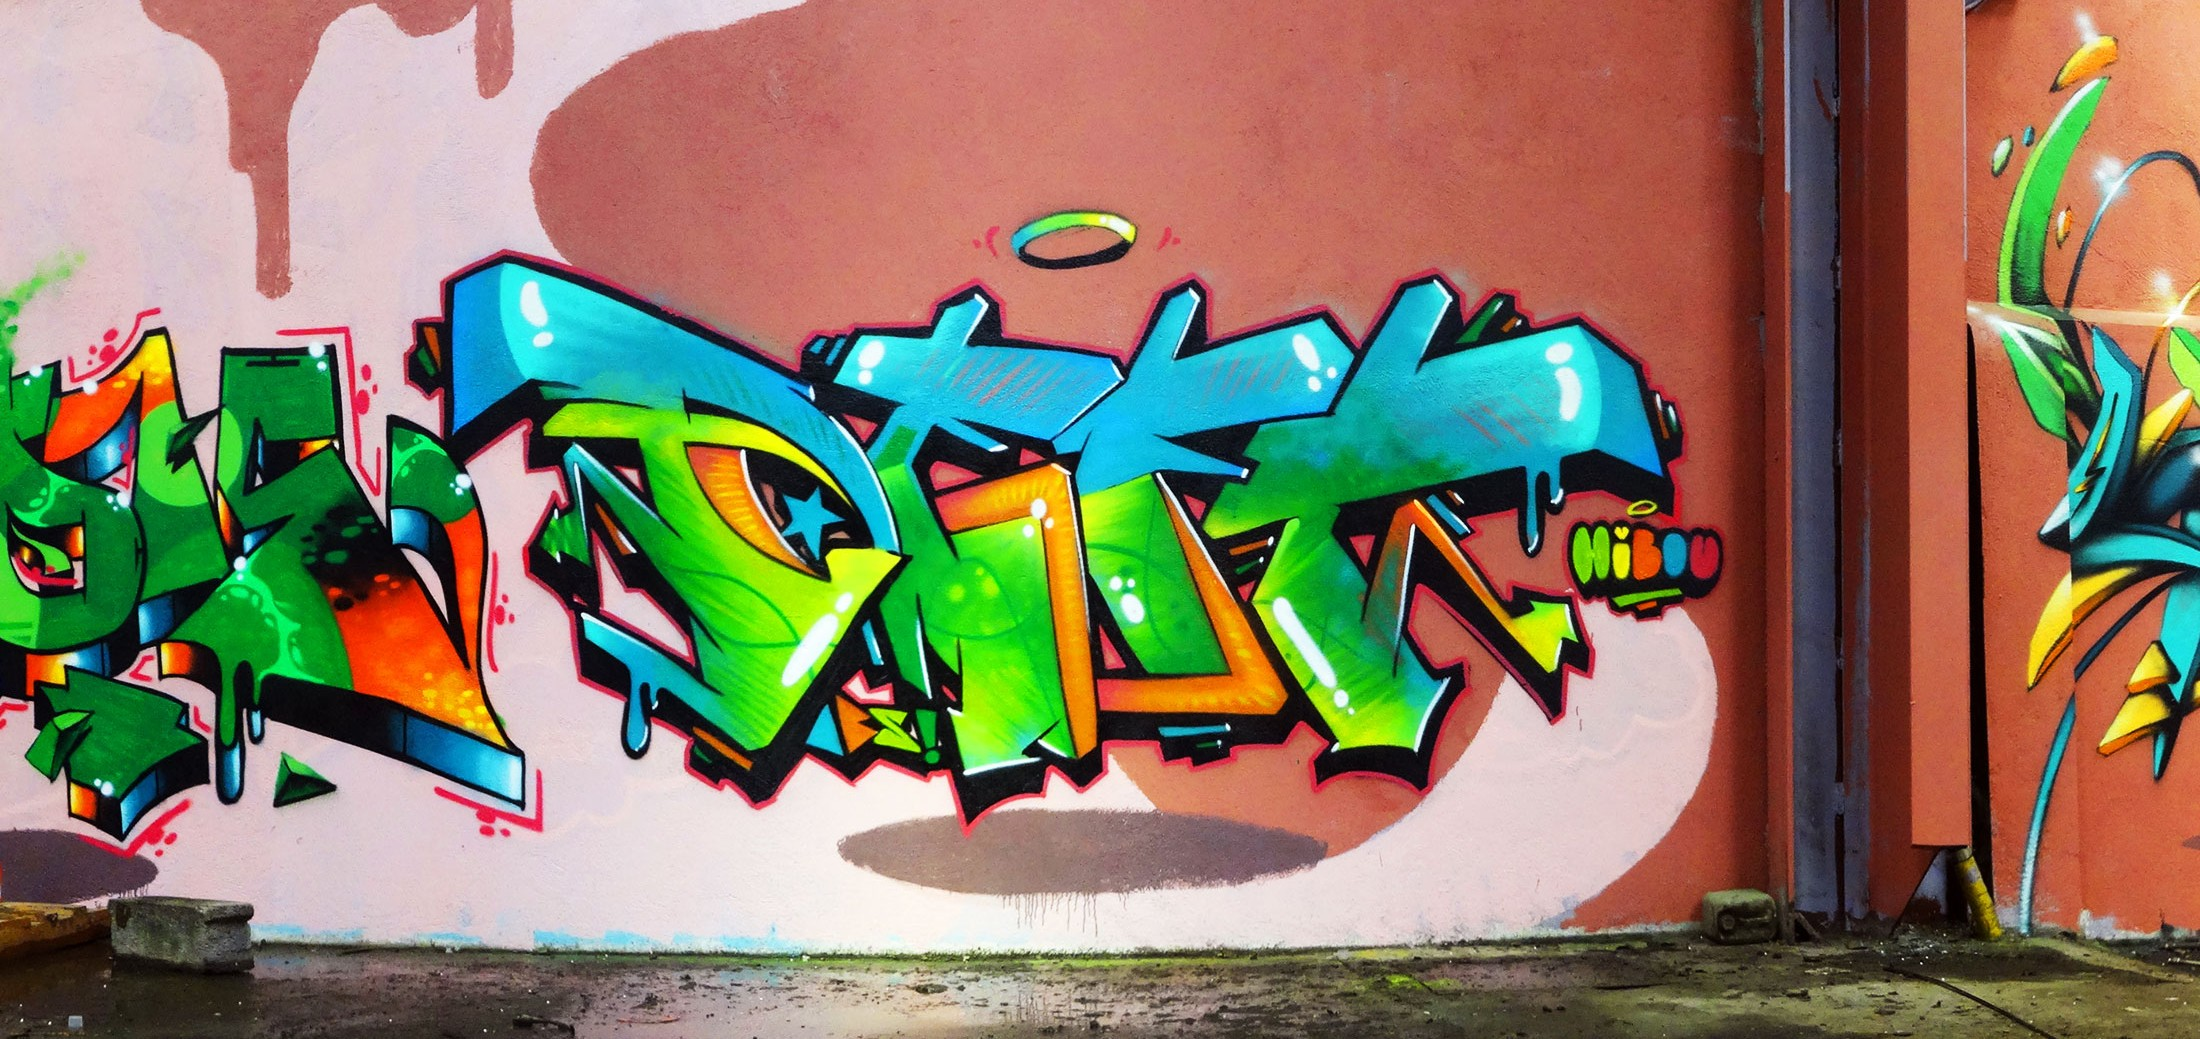 deft_graffiti_endtoend